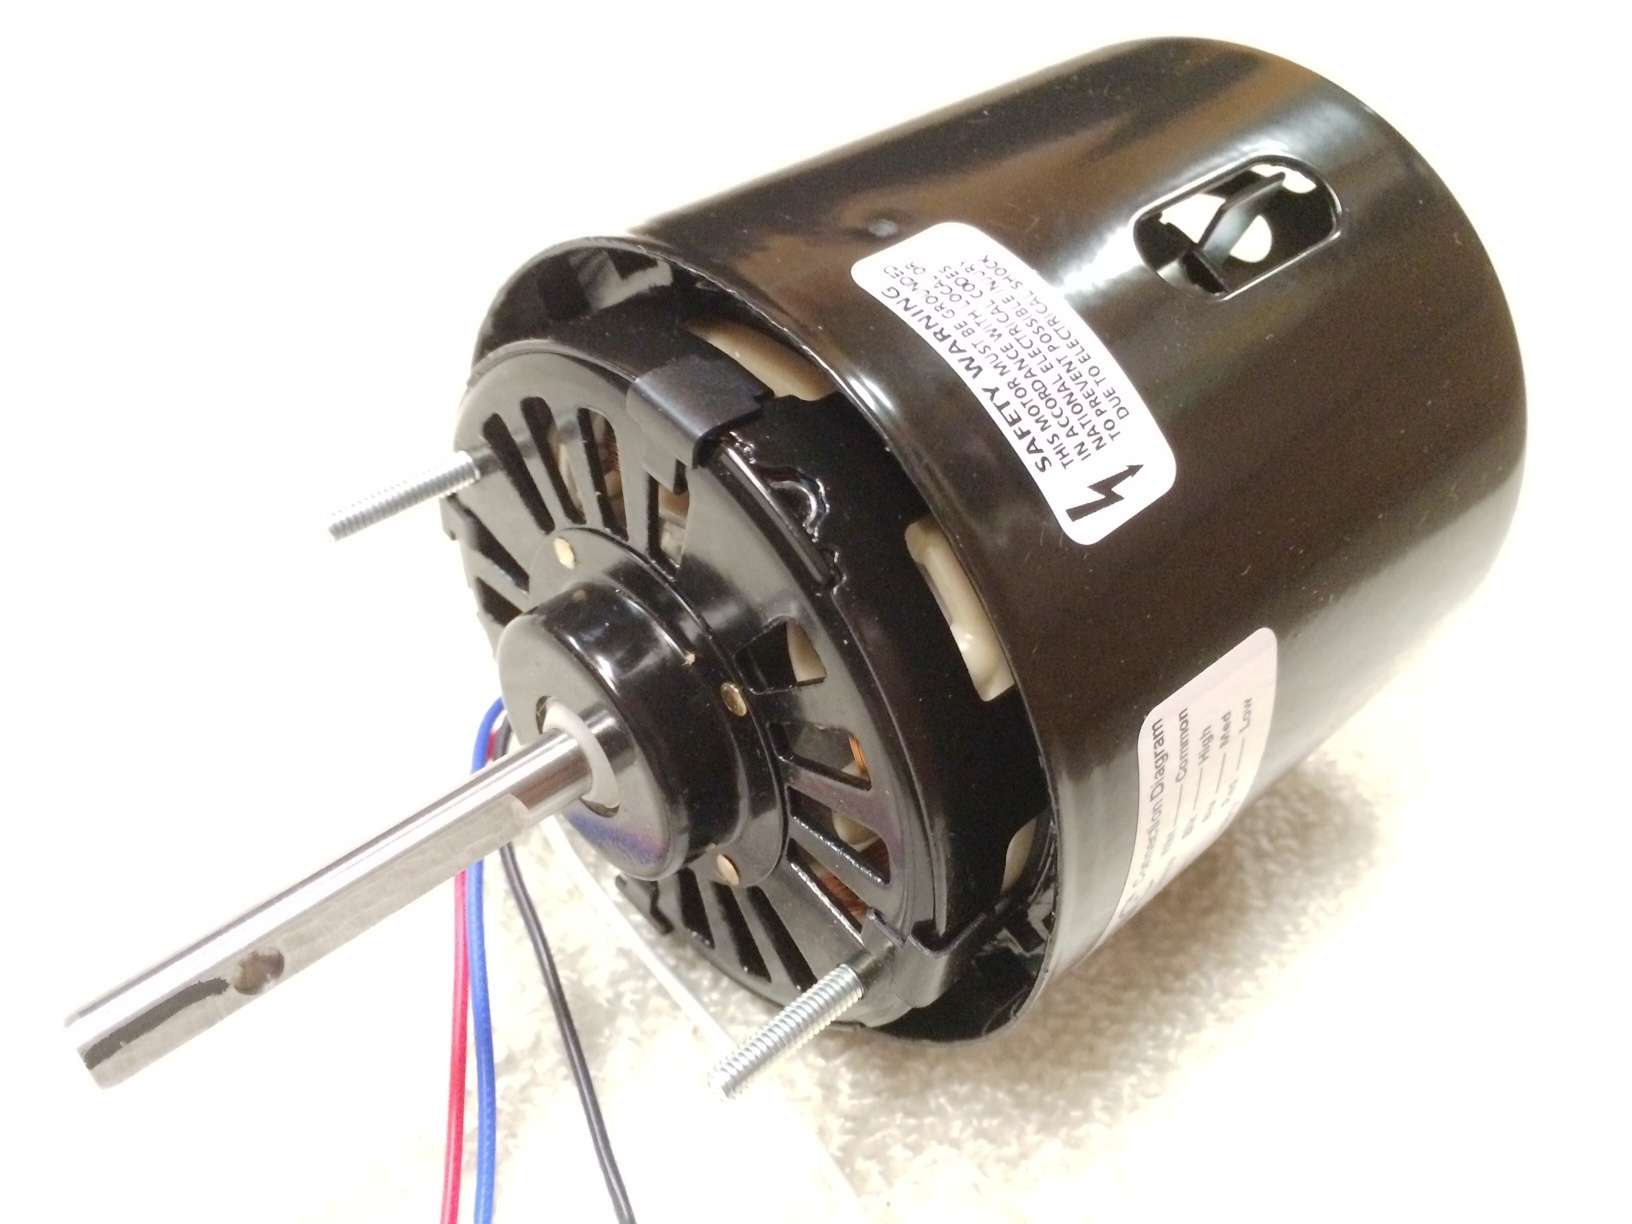 hight resolution of buck stove three speed blower motor for 26000 27000 28000 models furnace fan motor wiring fireplace insert fan motor wiring diagram